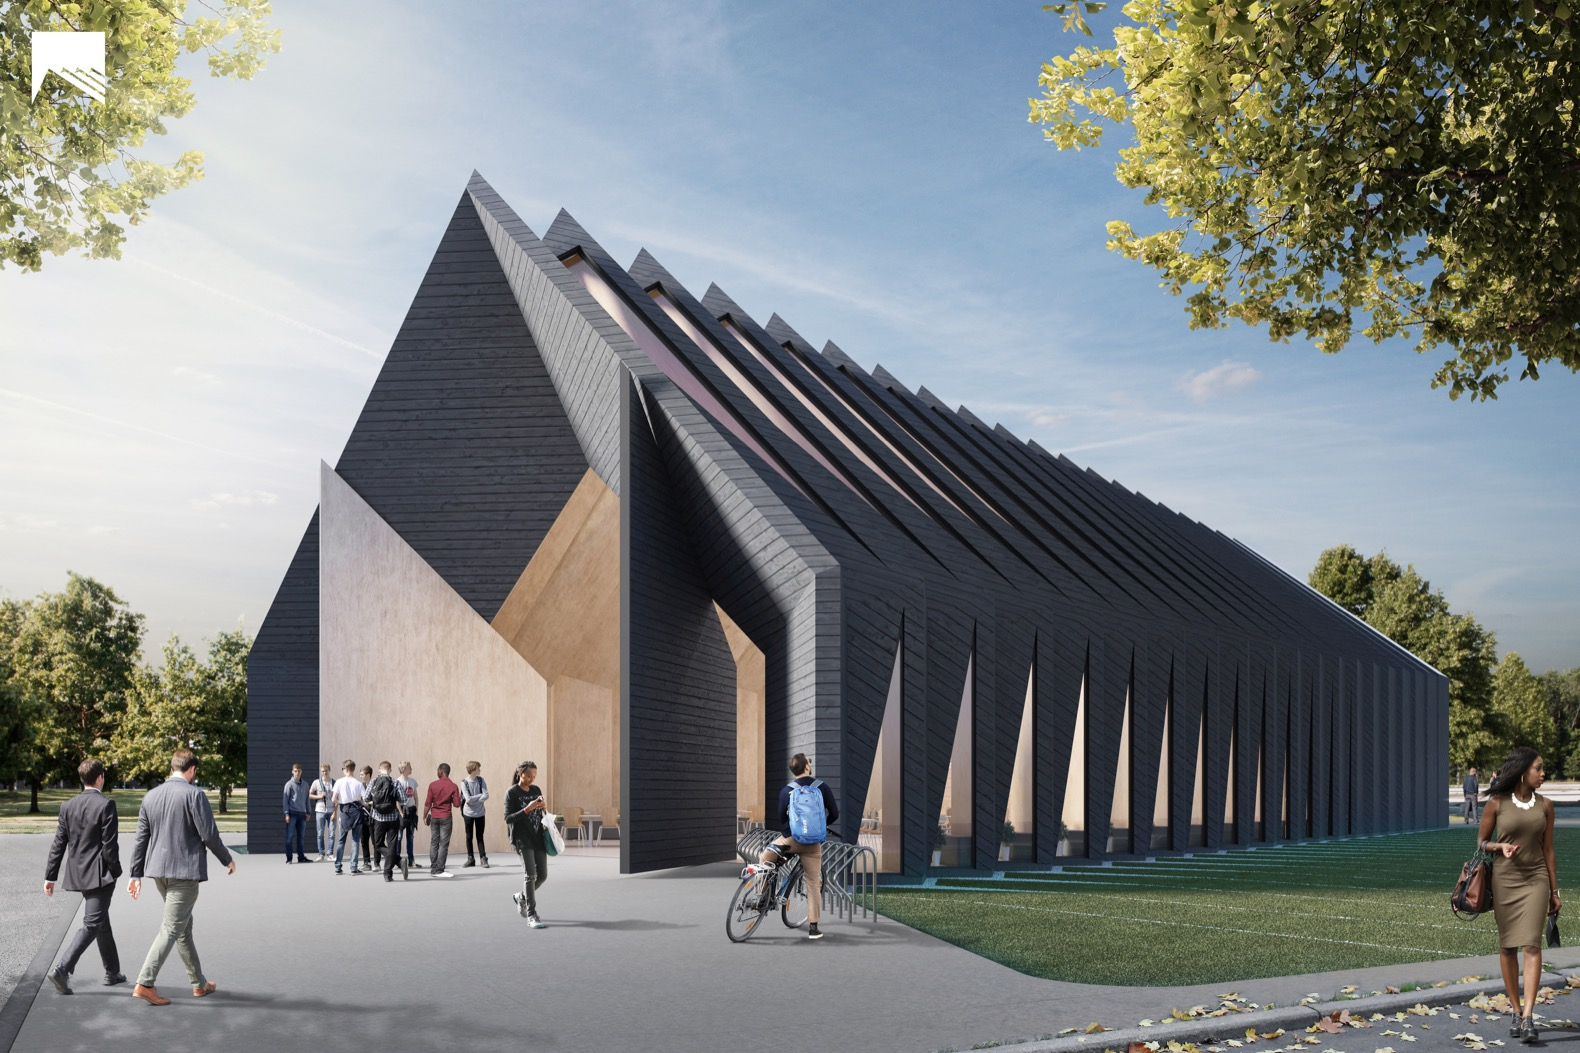 MIT develops a sustainable, mass timber-building prototype modeled after the longhouse